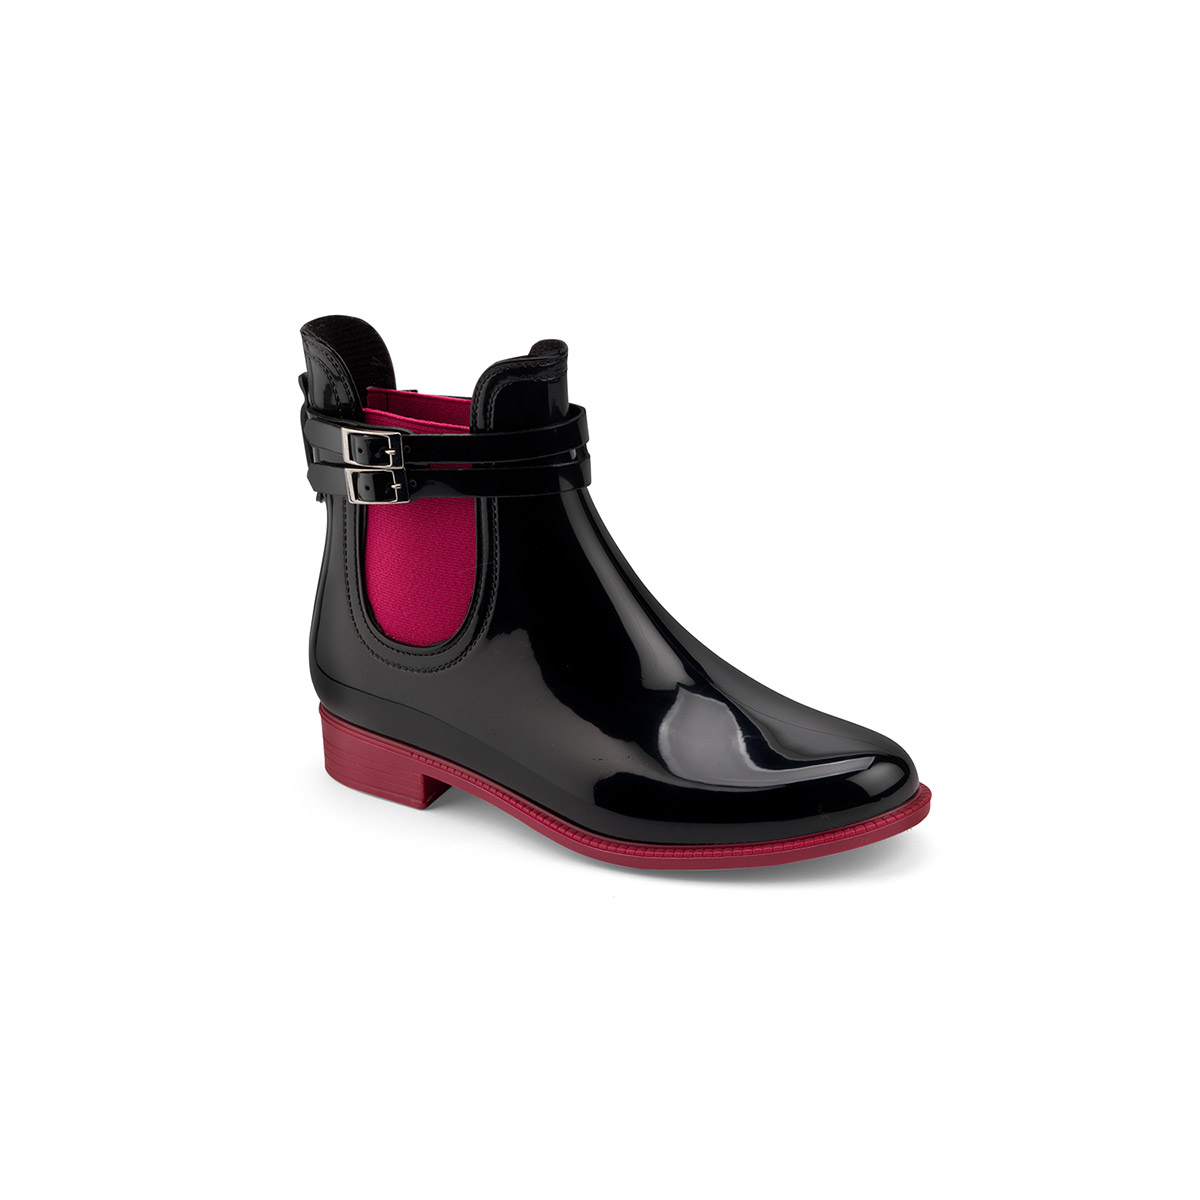 Two-colour chelsea rain boot with double strap